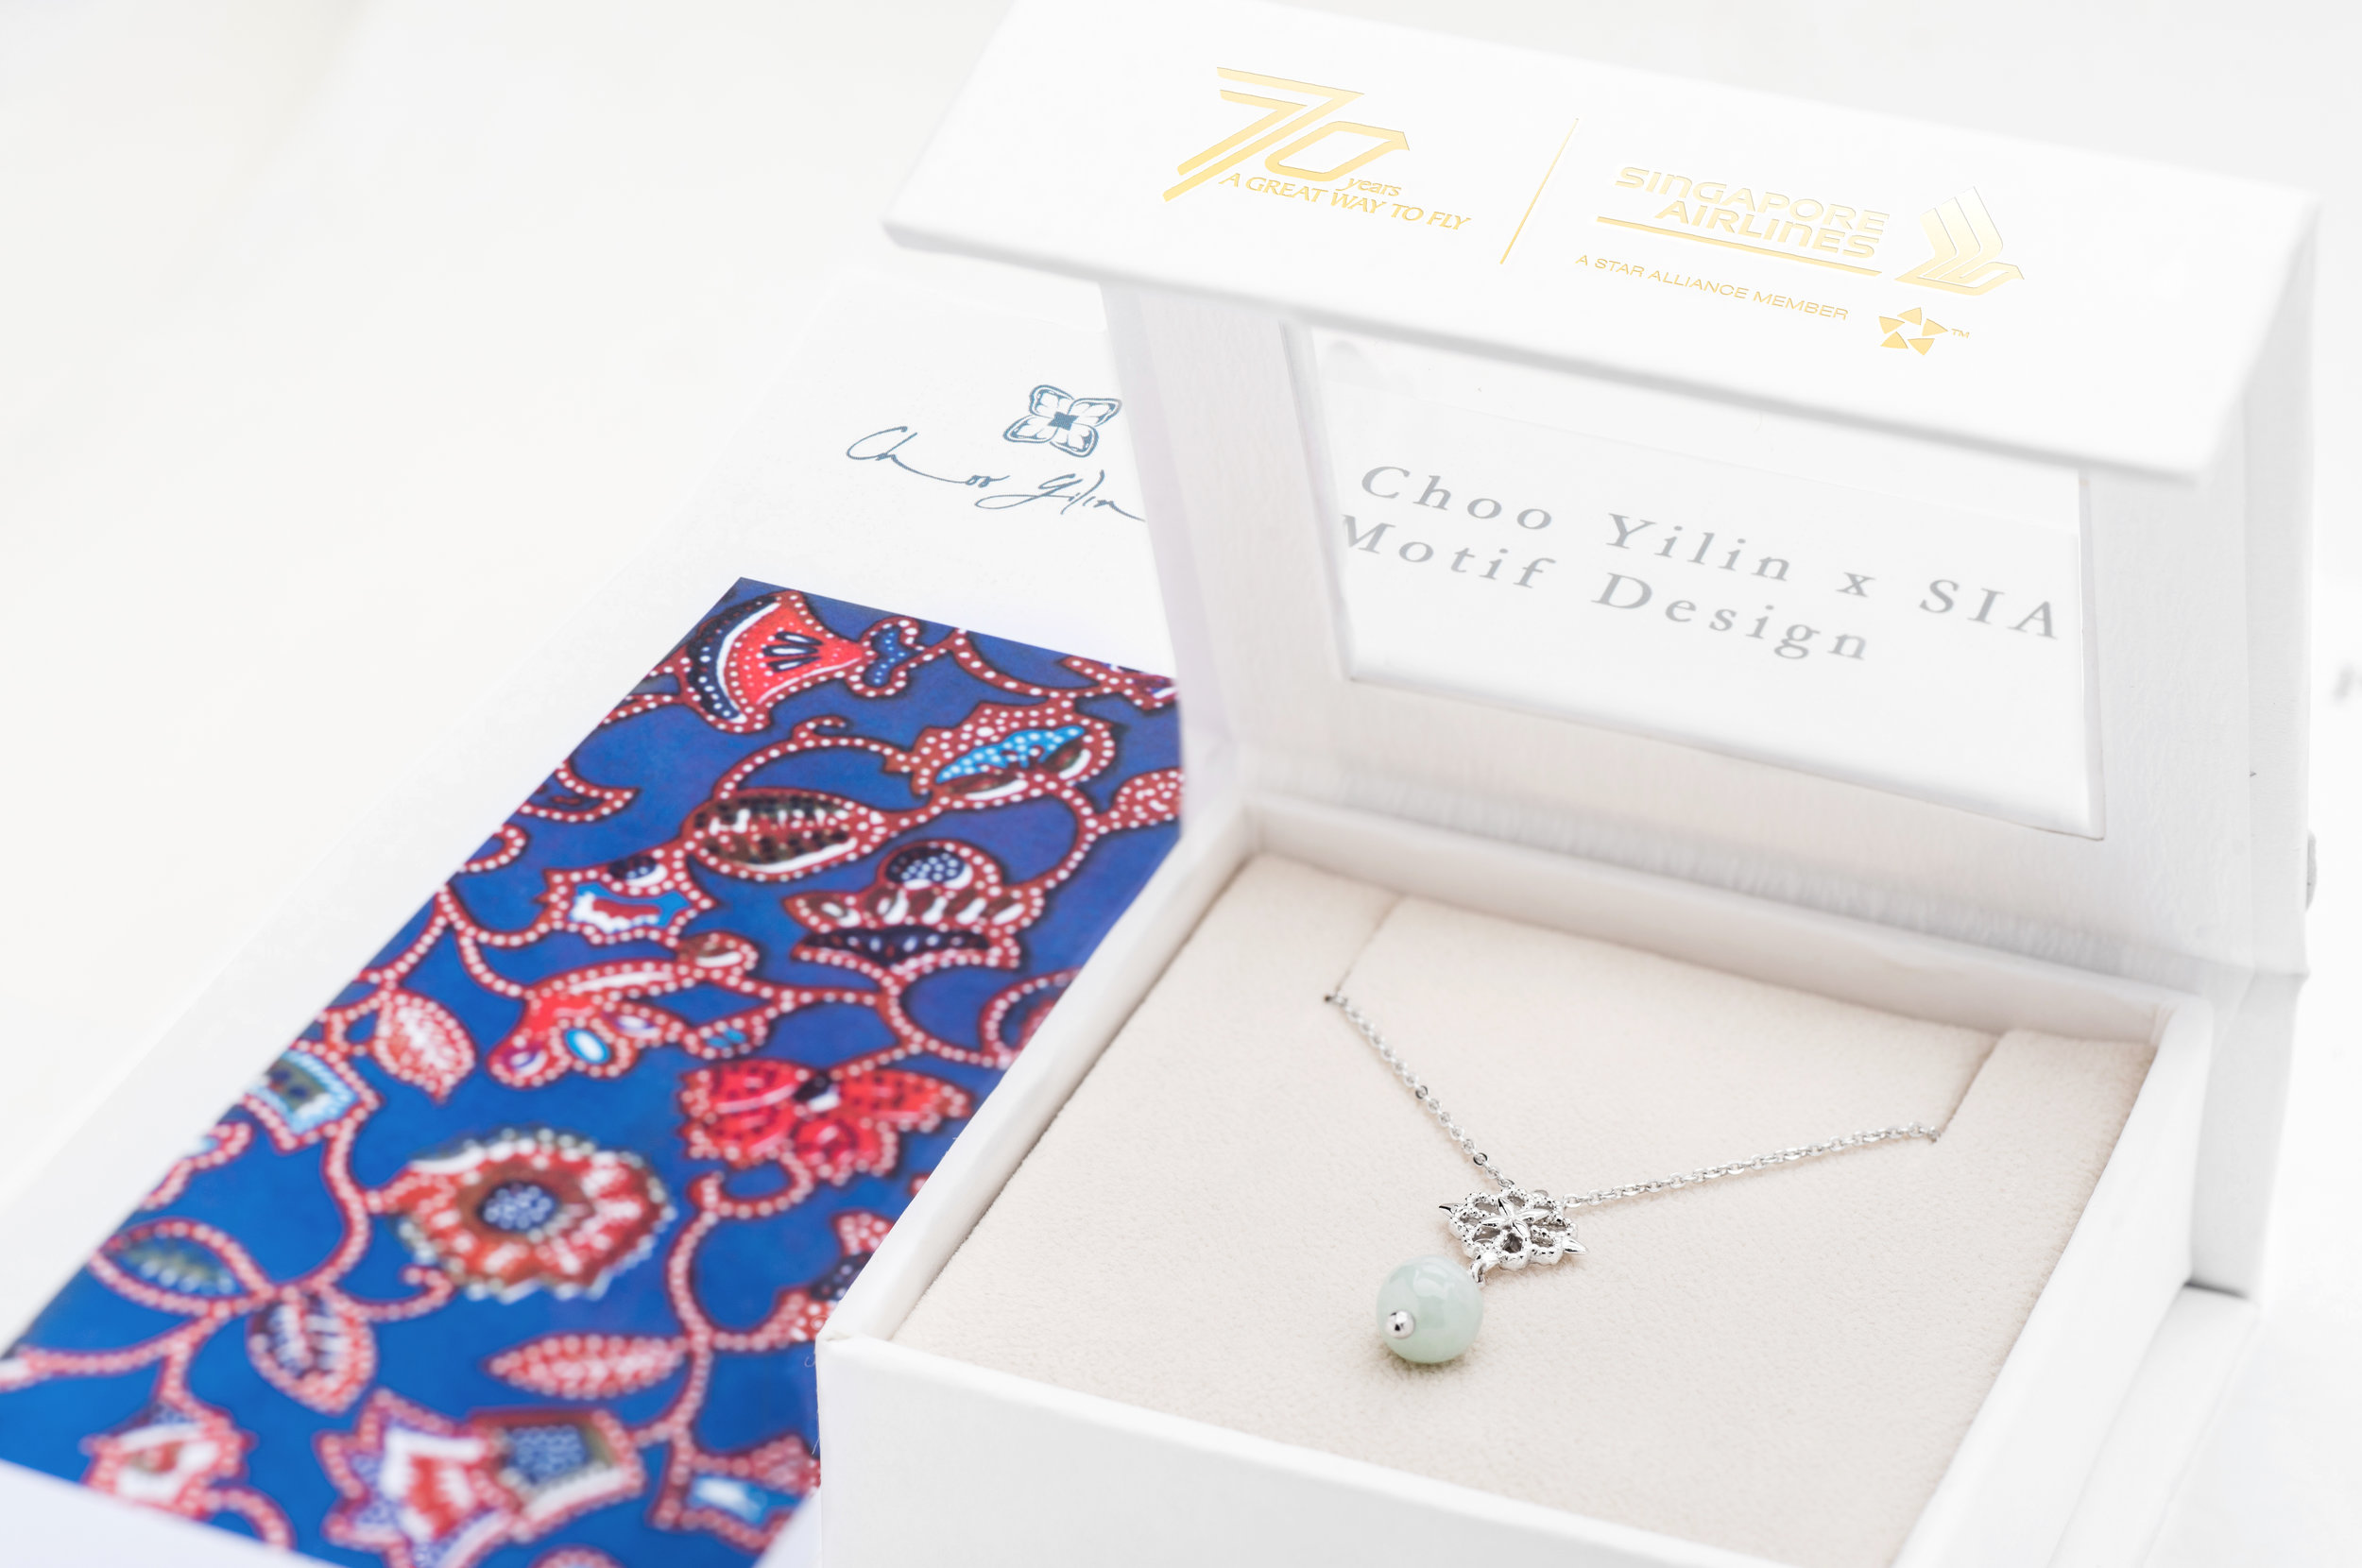 The Choo Yilin x Singapore Airlines Batik Jade Necklace